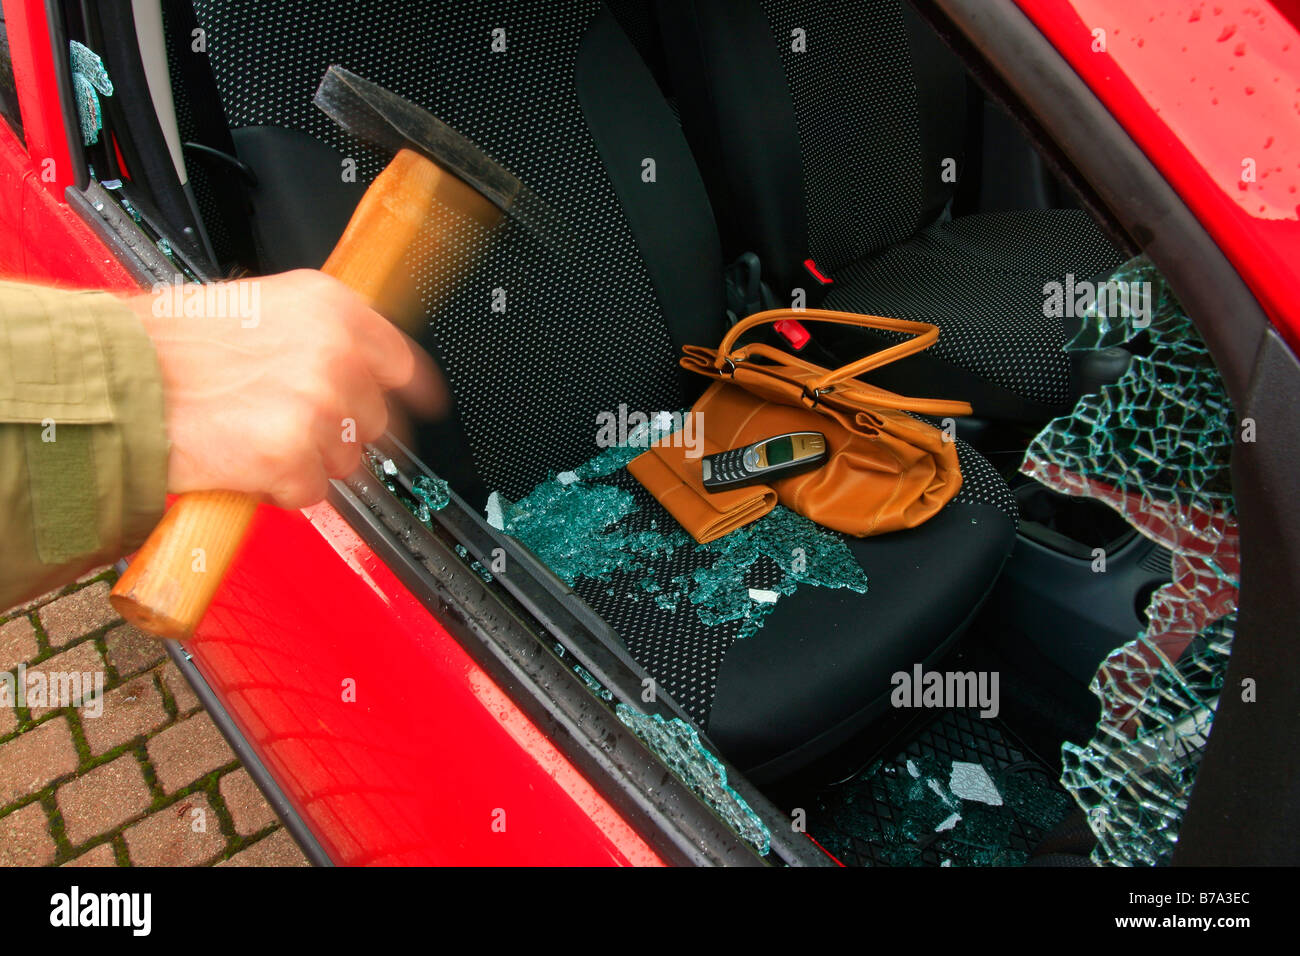 Car burglary, hand with hammer batters the side window, valuables left on the passenger seat, i.e. handbag, purse - Stock Image